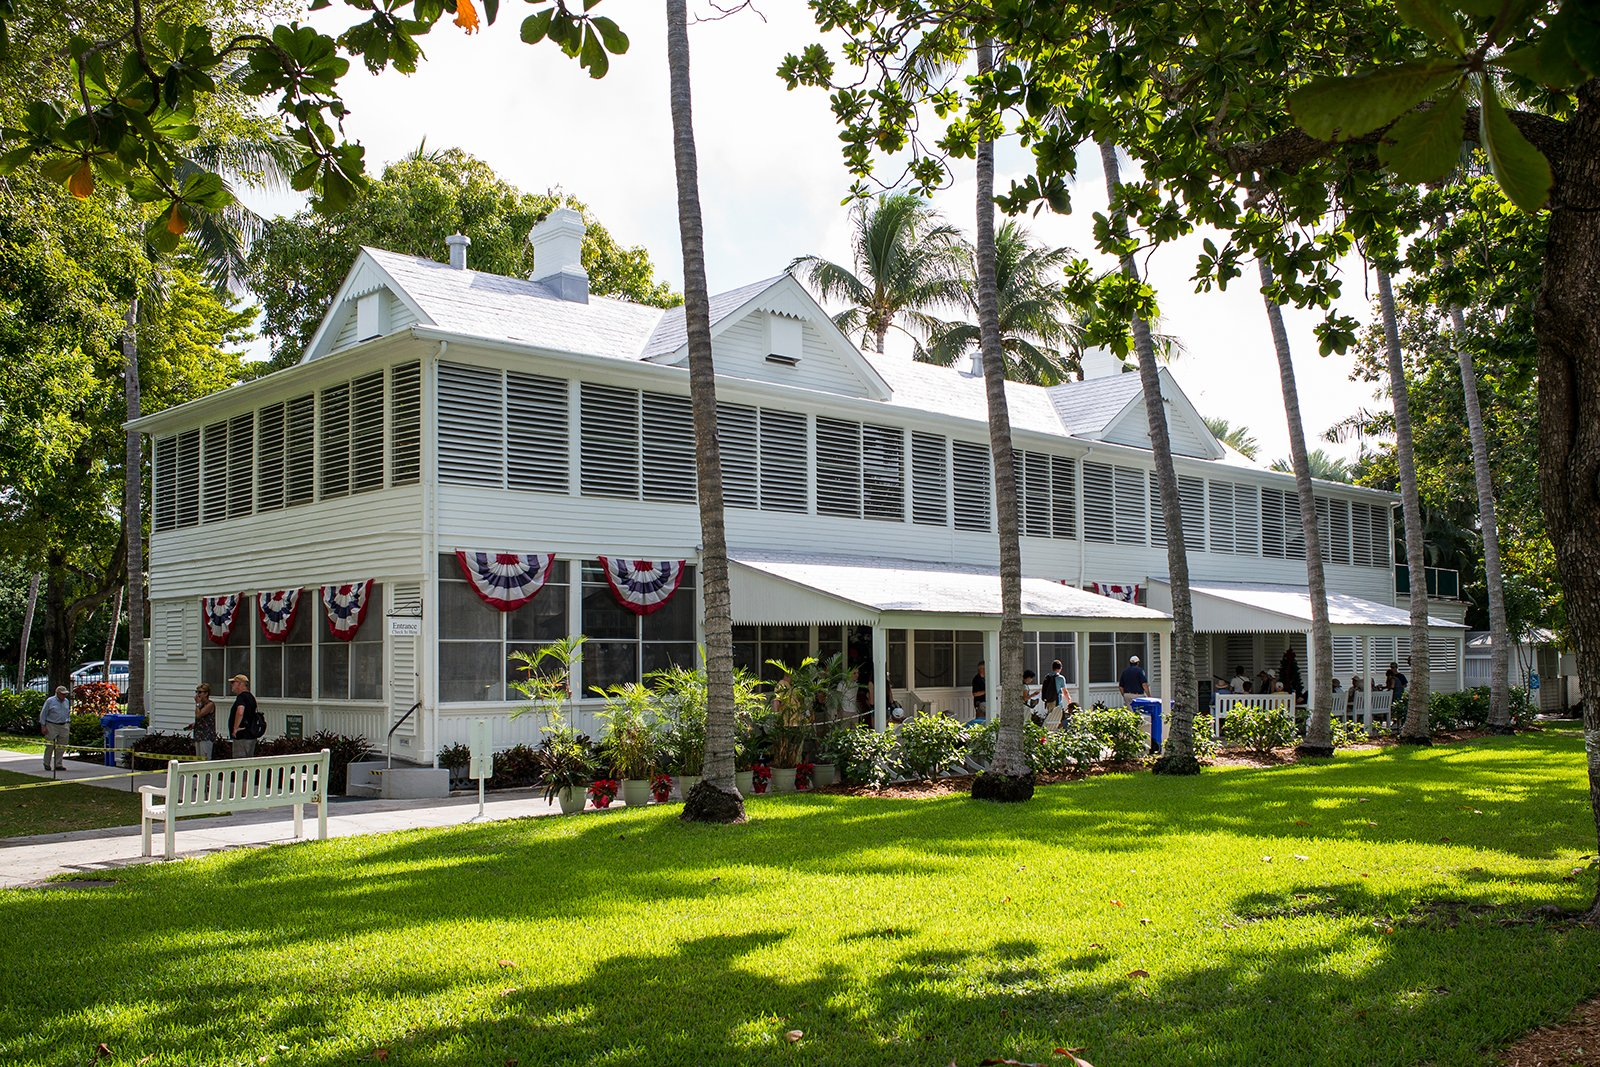 10 Best Things to Do in Key West - What is Key West Most Famous For?